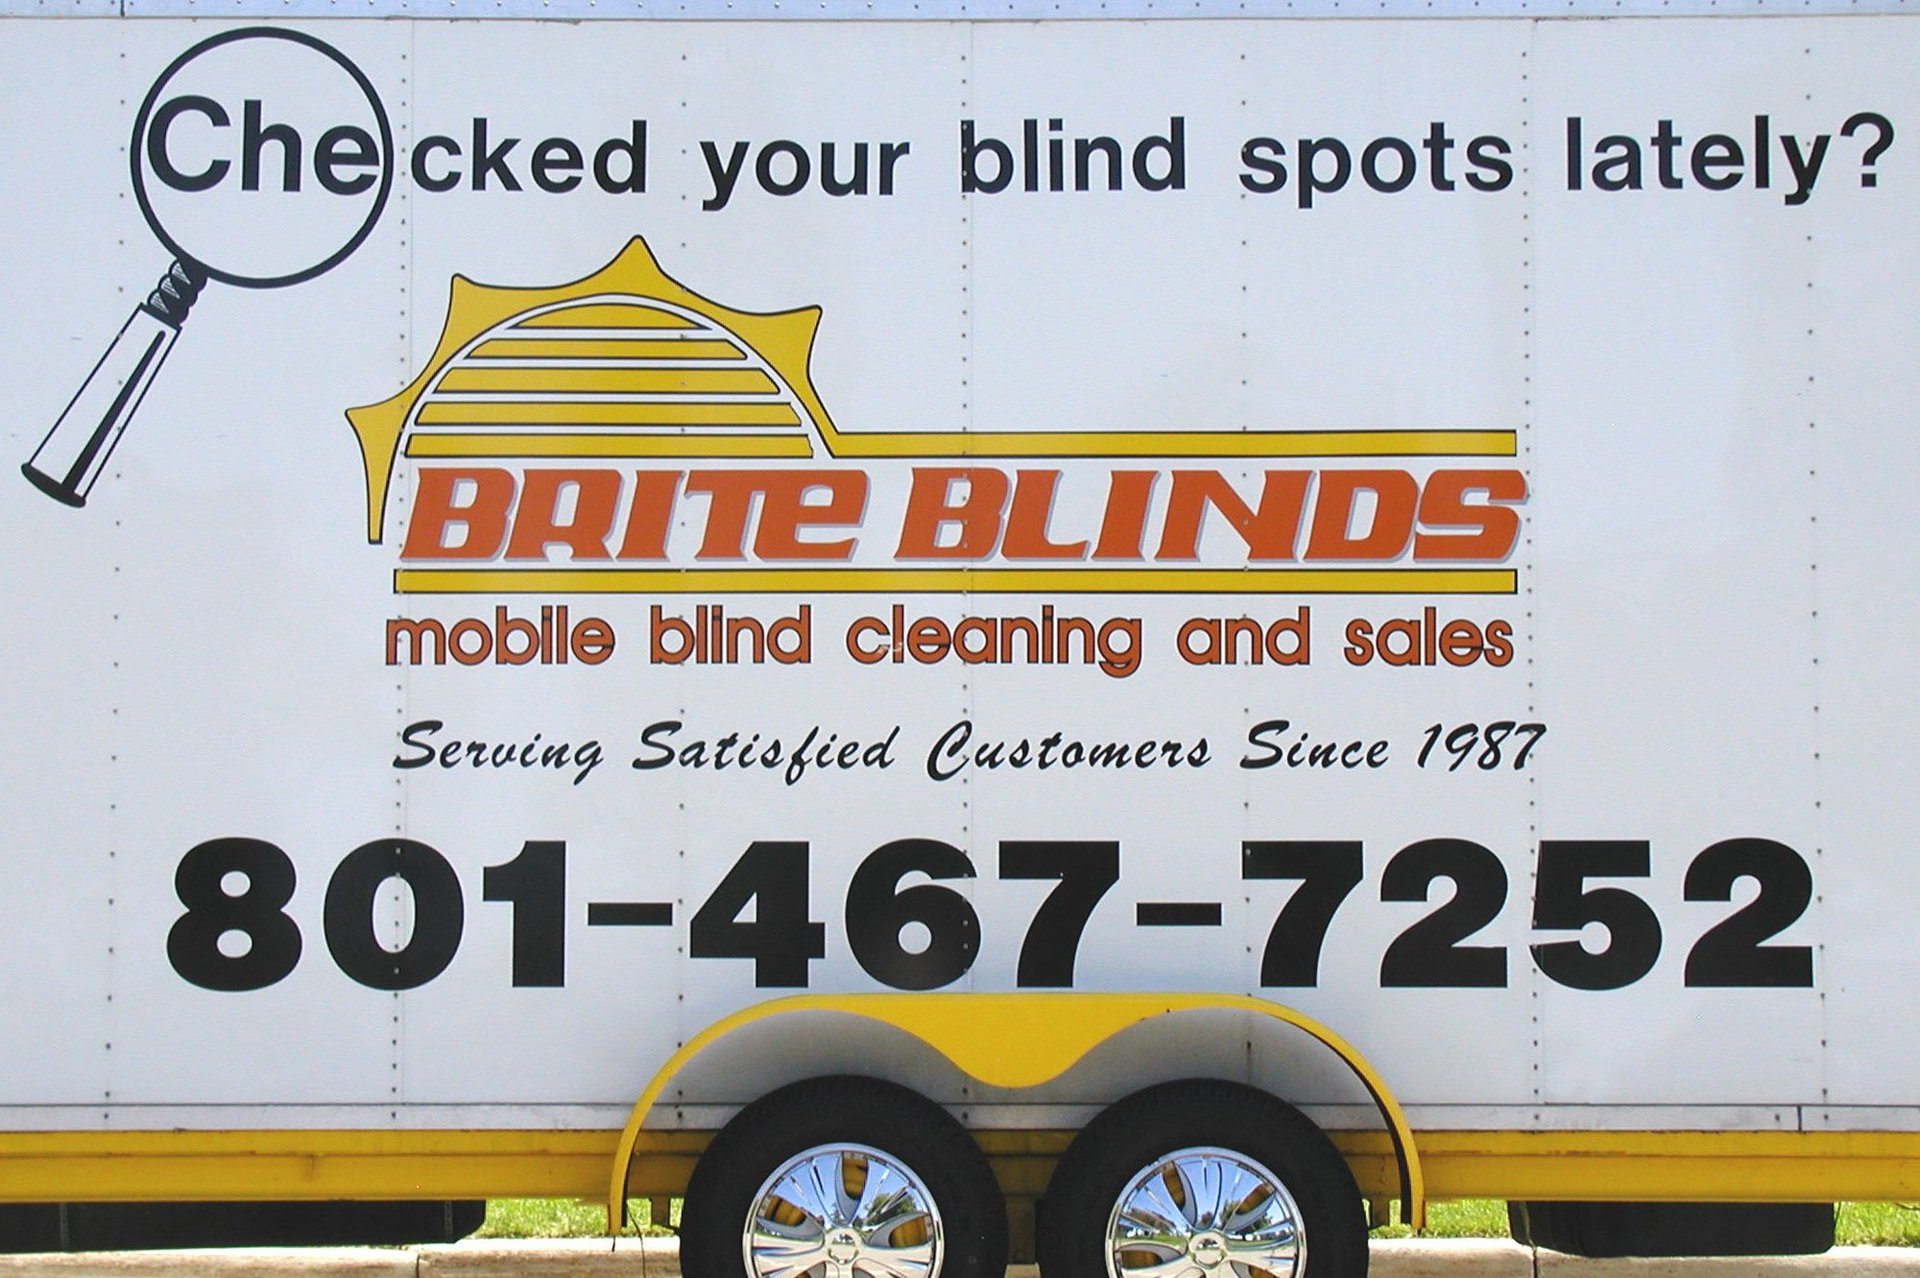 Brite Blinds Mobile blind cleaning and sales Truck